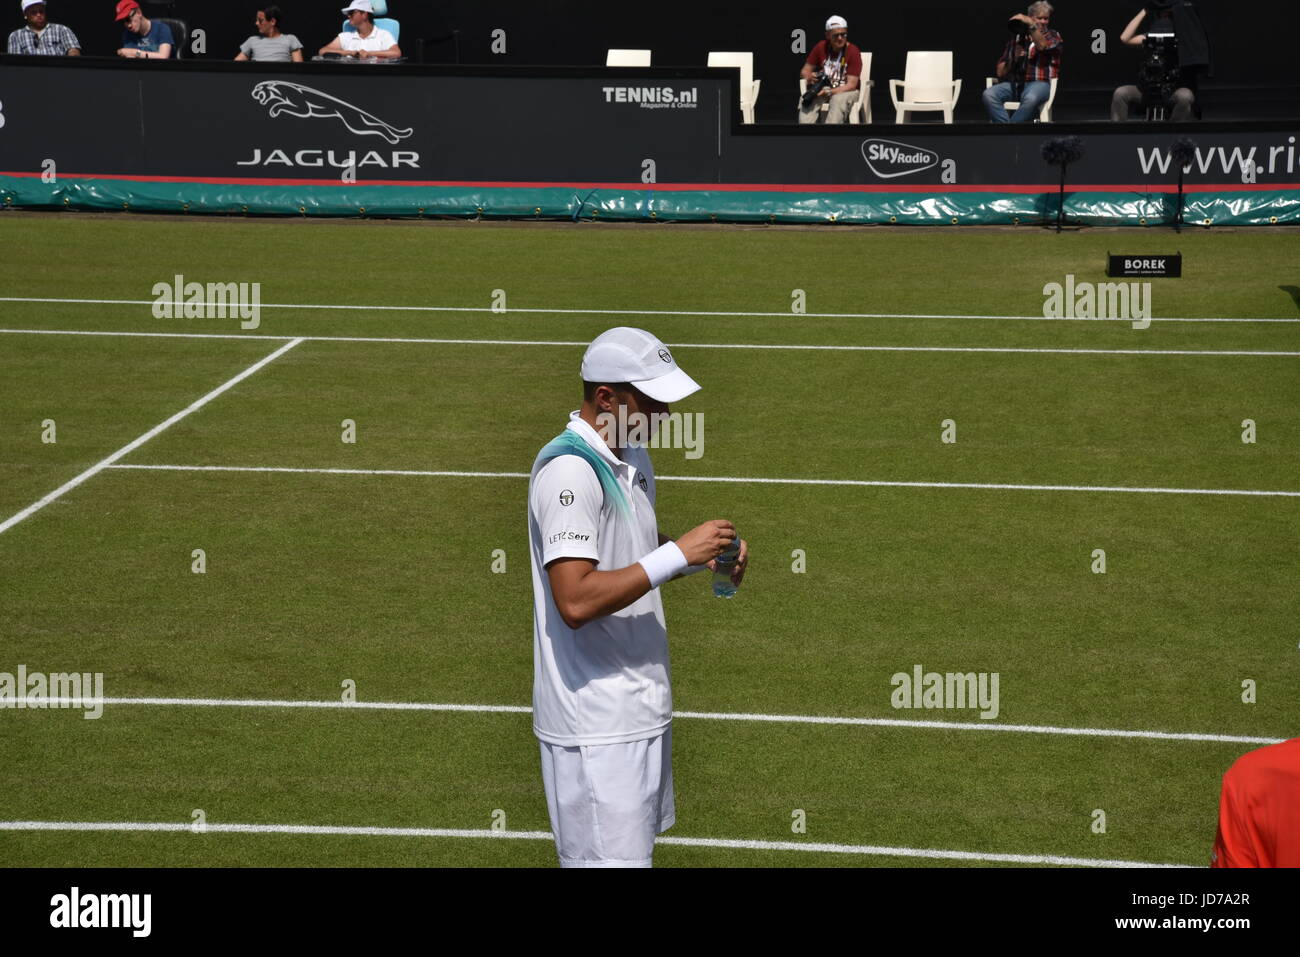 Mens Ricoh Open finals 2017 between Gilles Müller and Ivo Karlović and prize ceremony - Stock Image